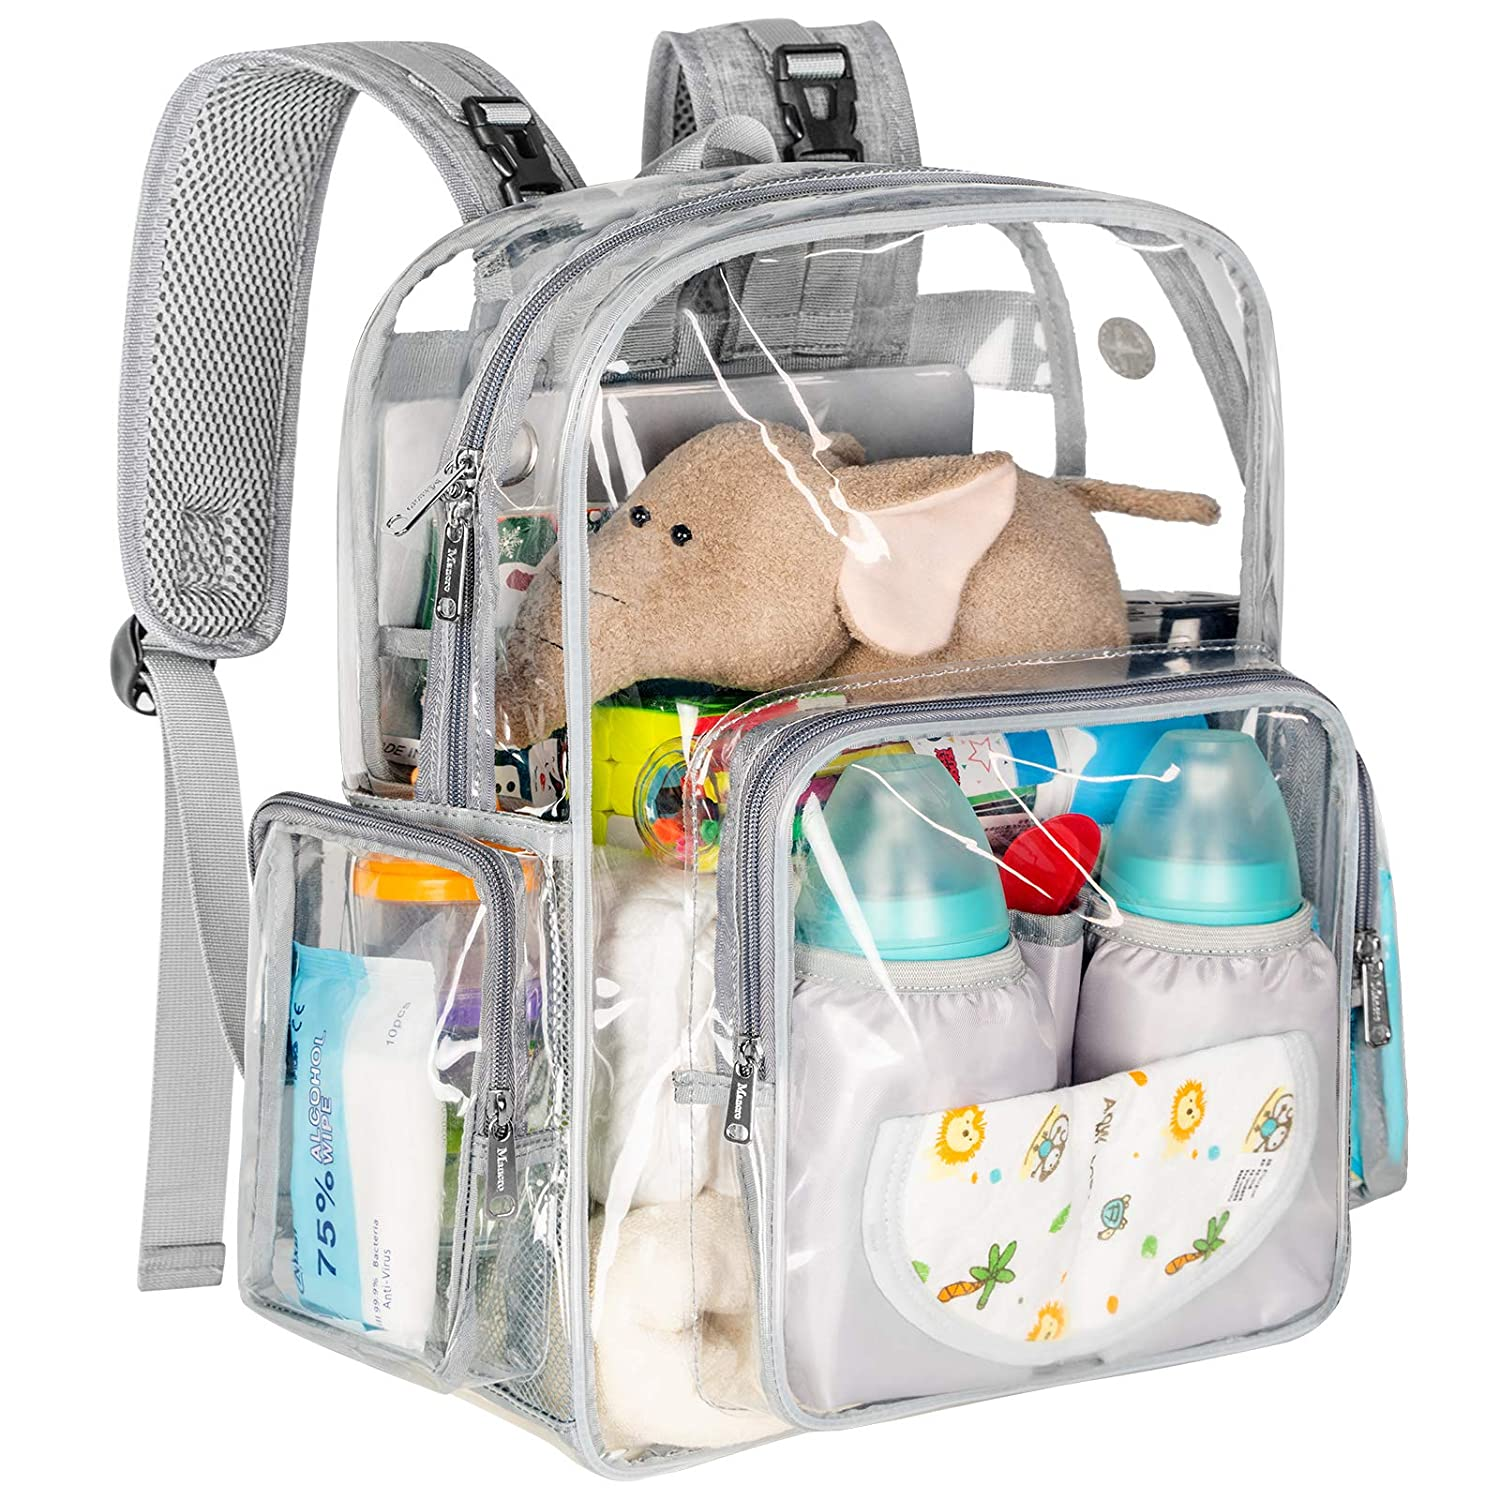 Diaper Bag Backpack, Clear Baby Bag Heavy Duty Transparent Backpack for Girls Boys, Multifunction Large Travel Back Pack Maternity Baby Nappy Changing Bags for Mom with Stroller Straps, Gray